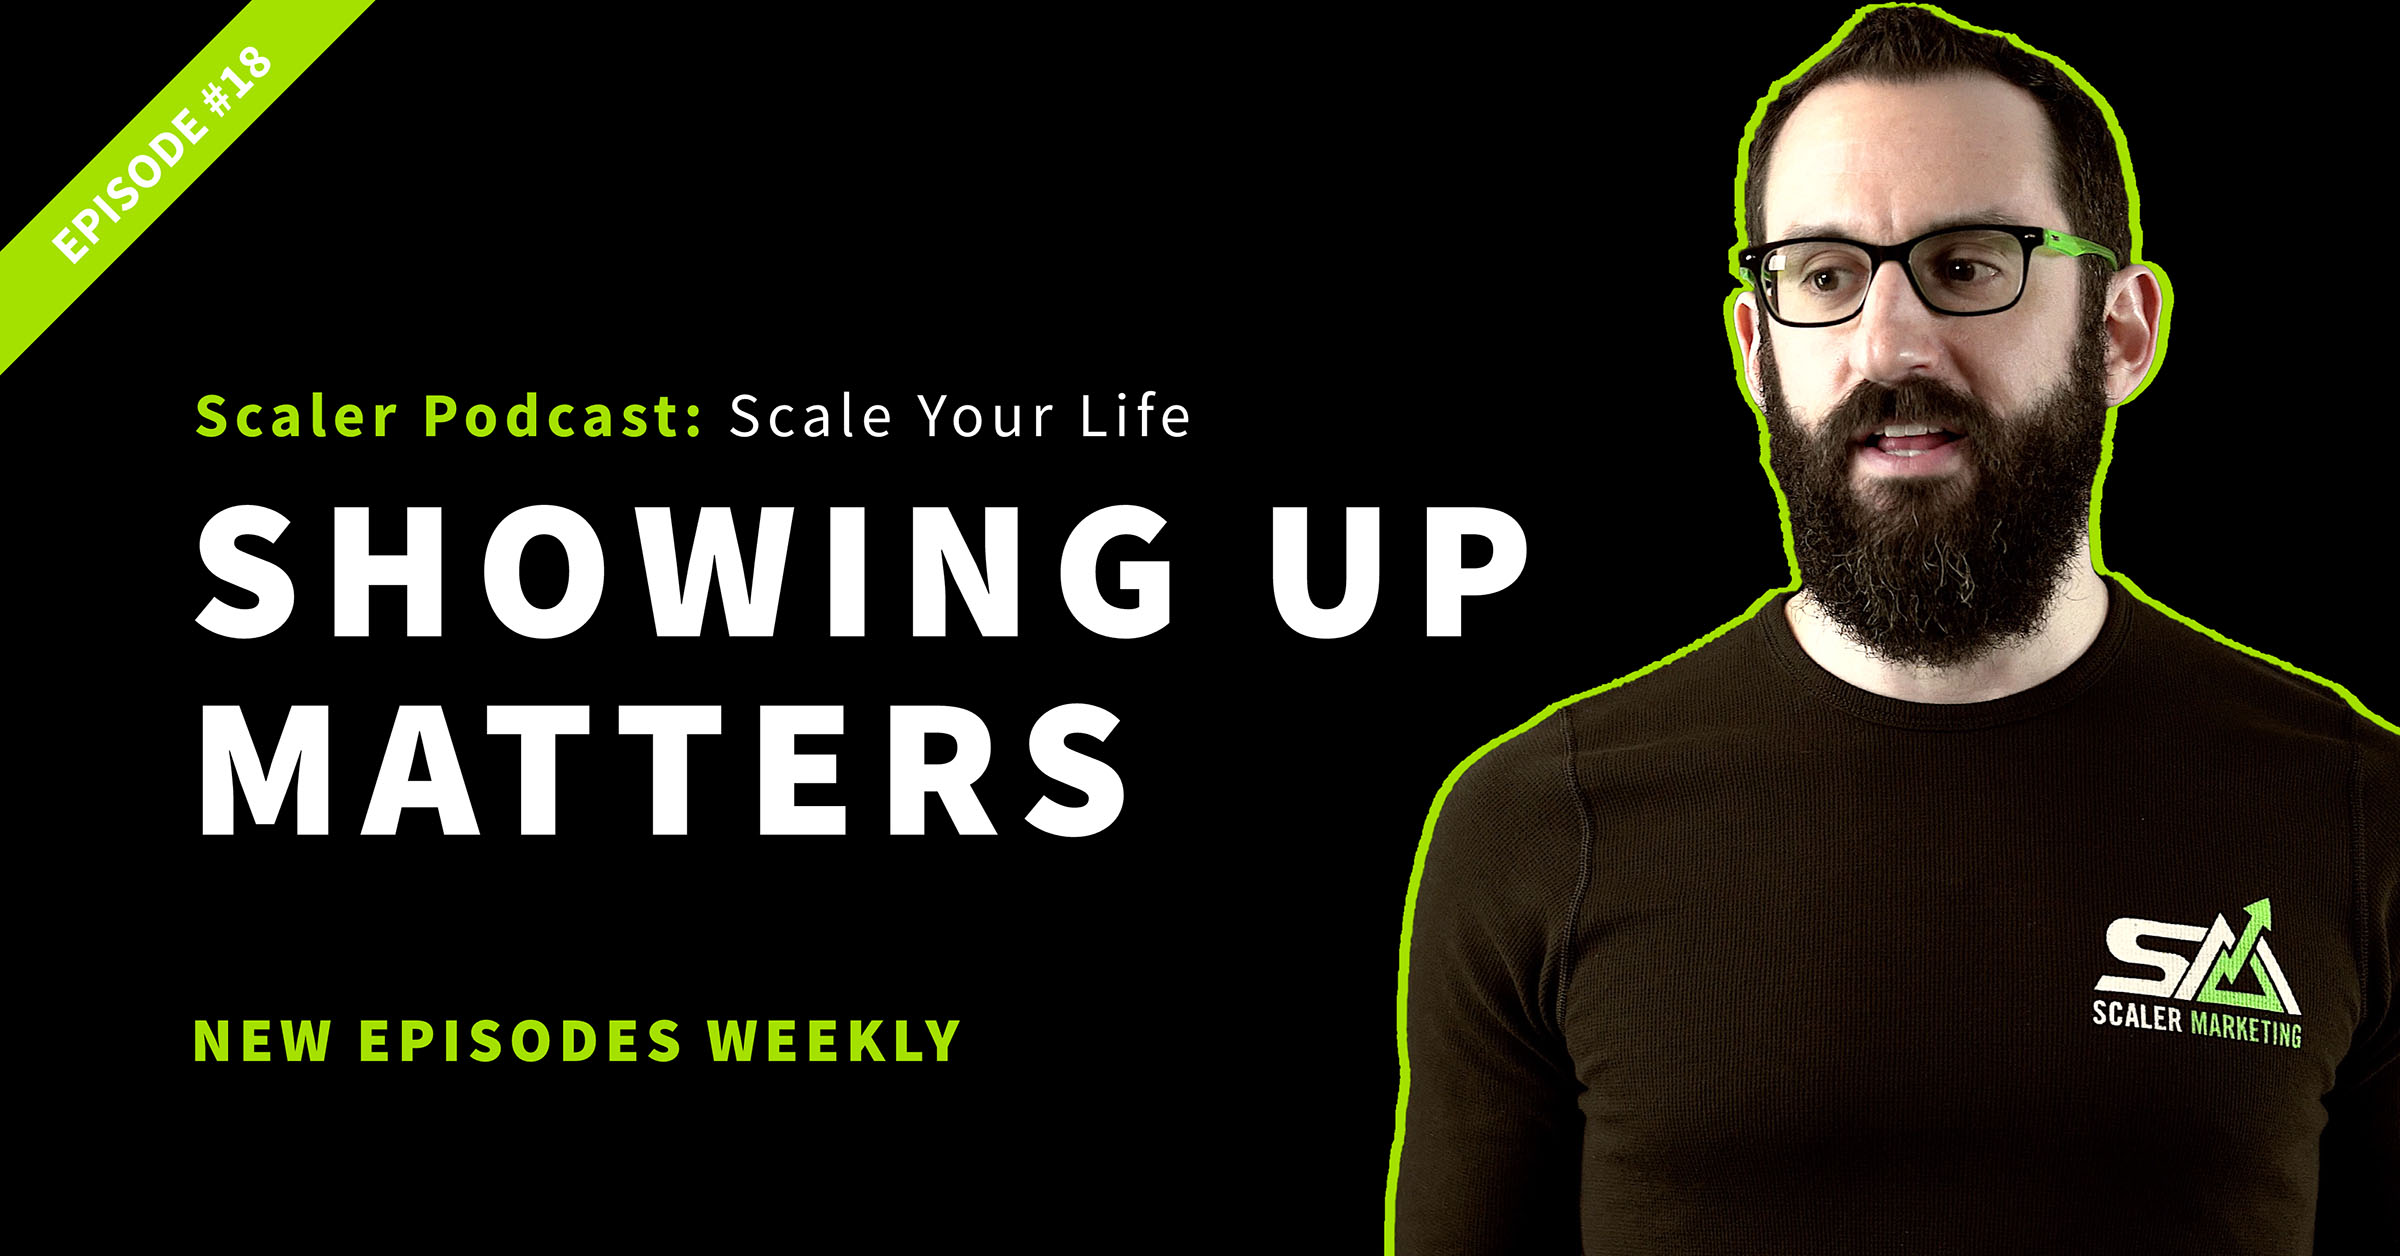 Episode 18 - Showing Up Matters